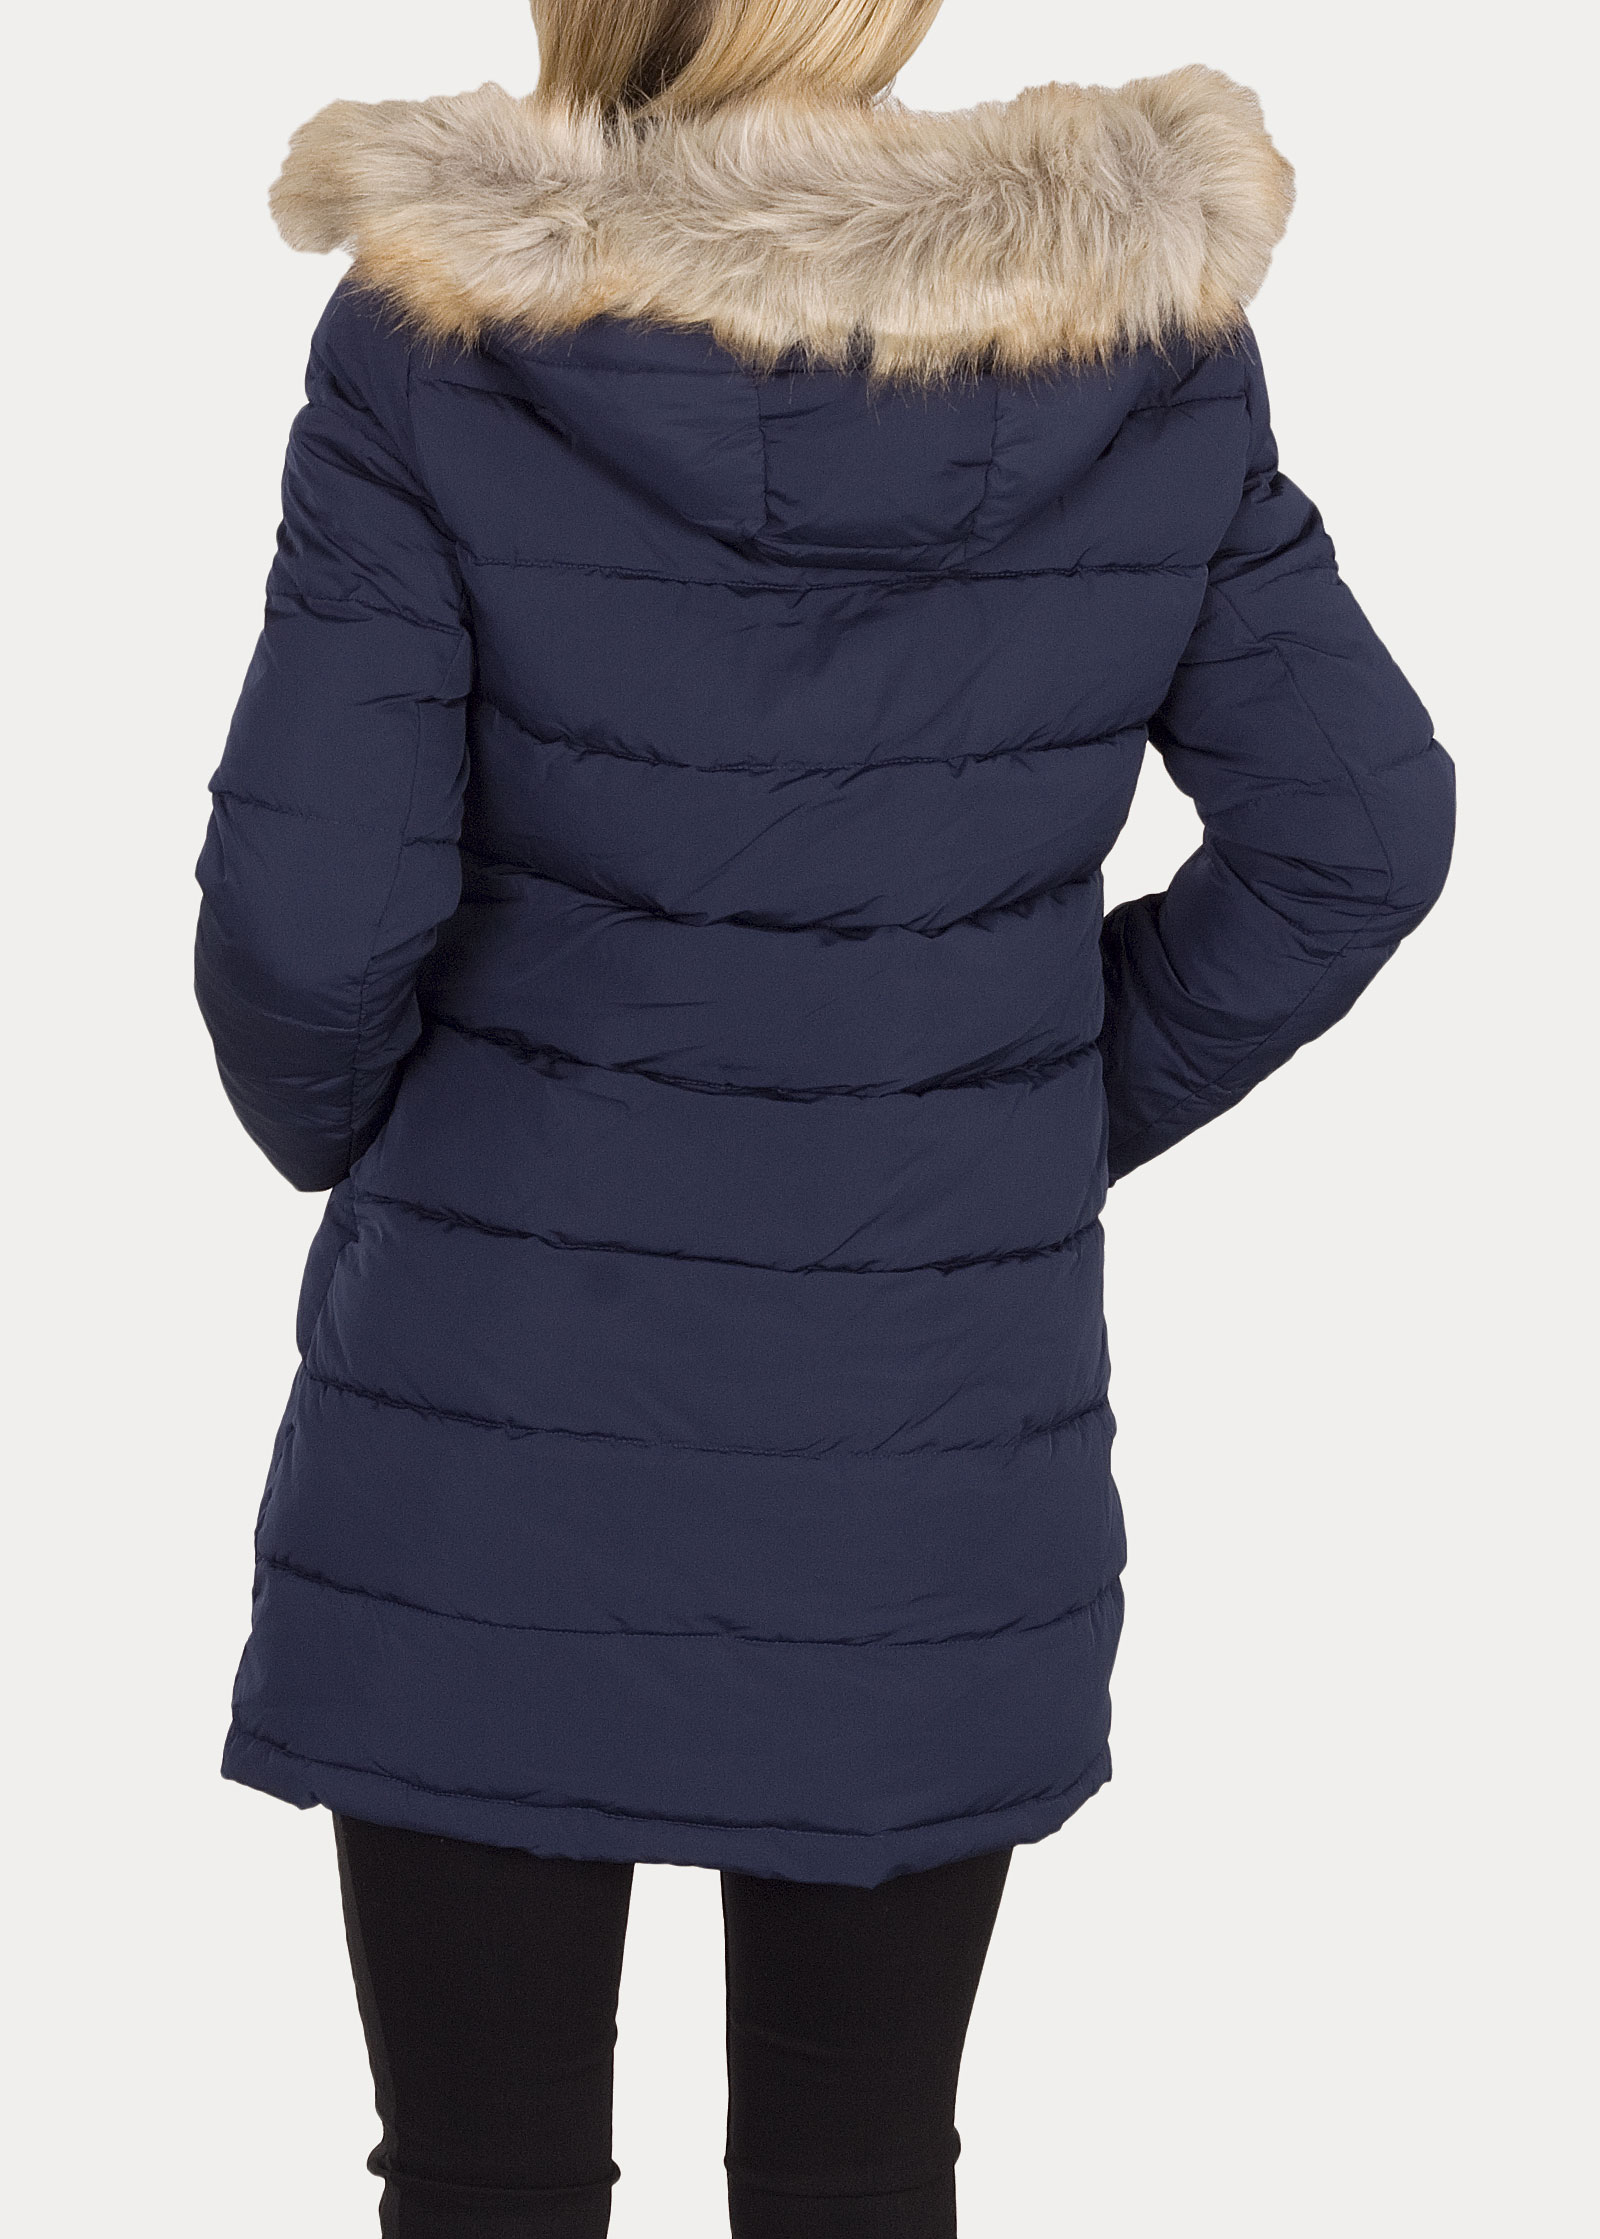 Wrangler® Long Puffer - Navy - elements